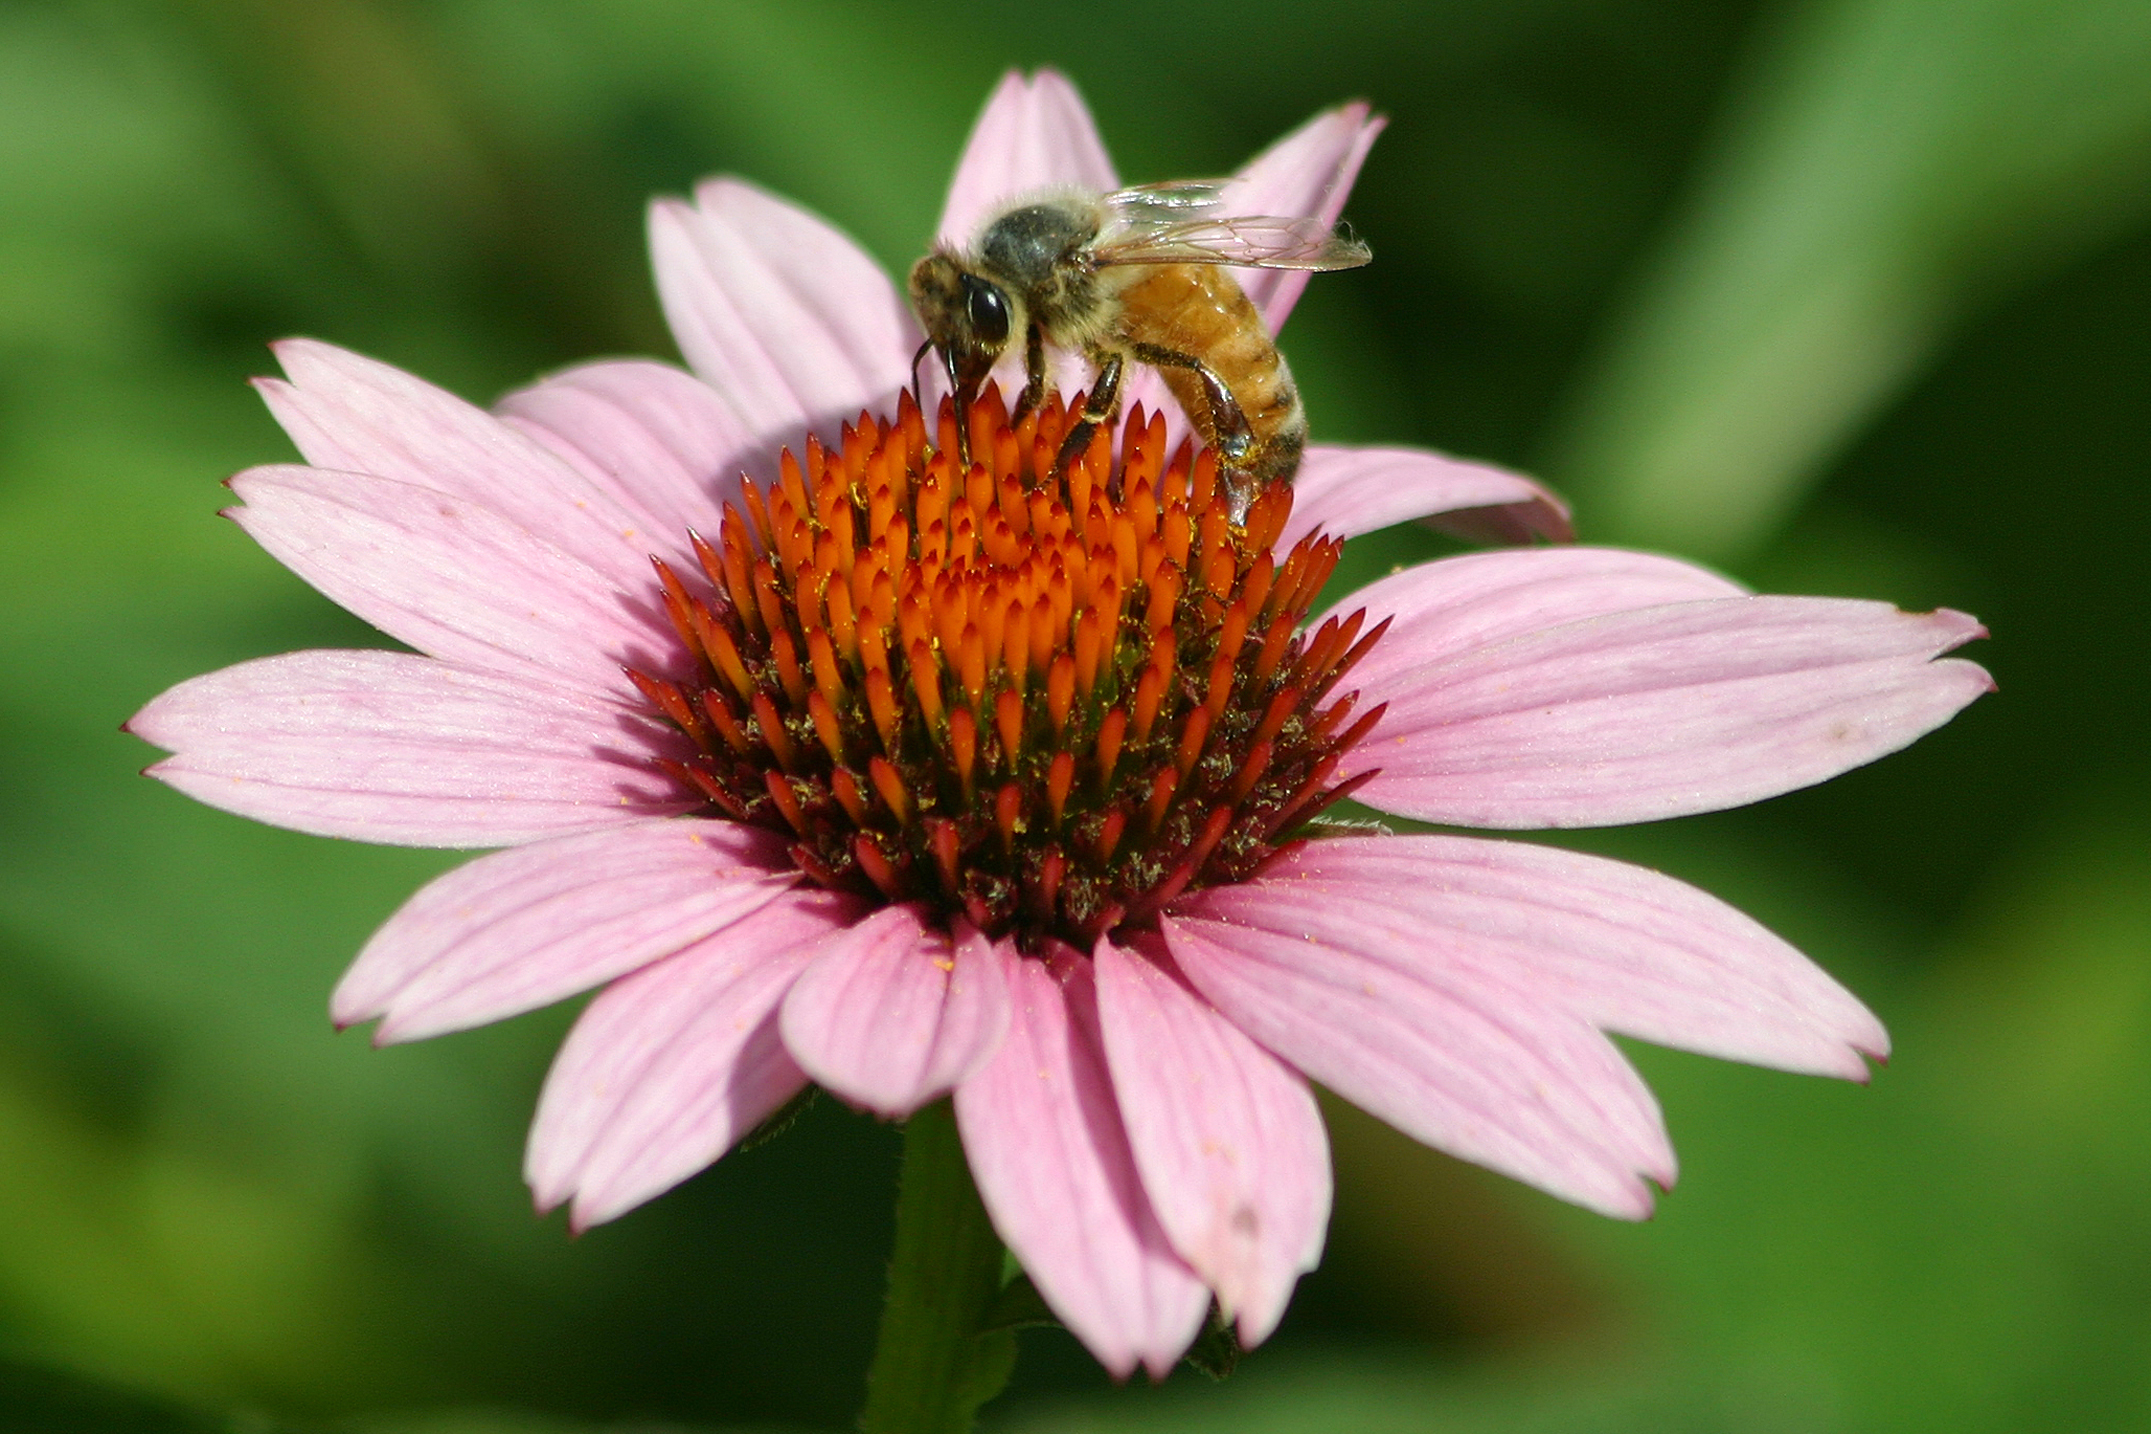 Bee pollinating a flower. Photo Credit to Carole Berney.